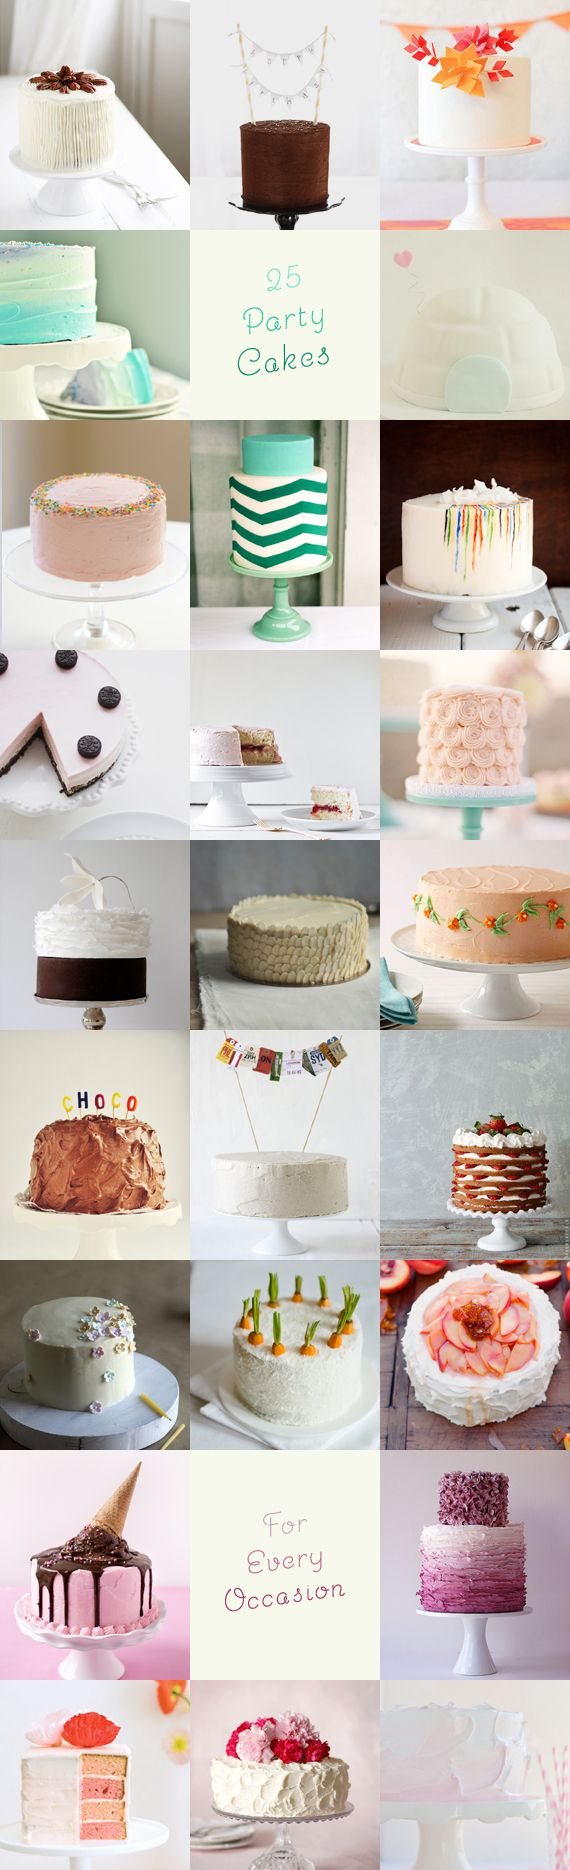 25 Pretty Party Cakes - favourites being the purple ombre one, the ice cream one and the chevron one :)